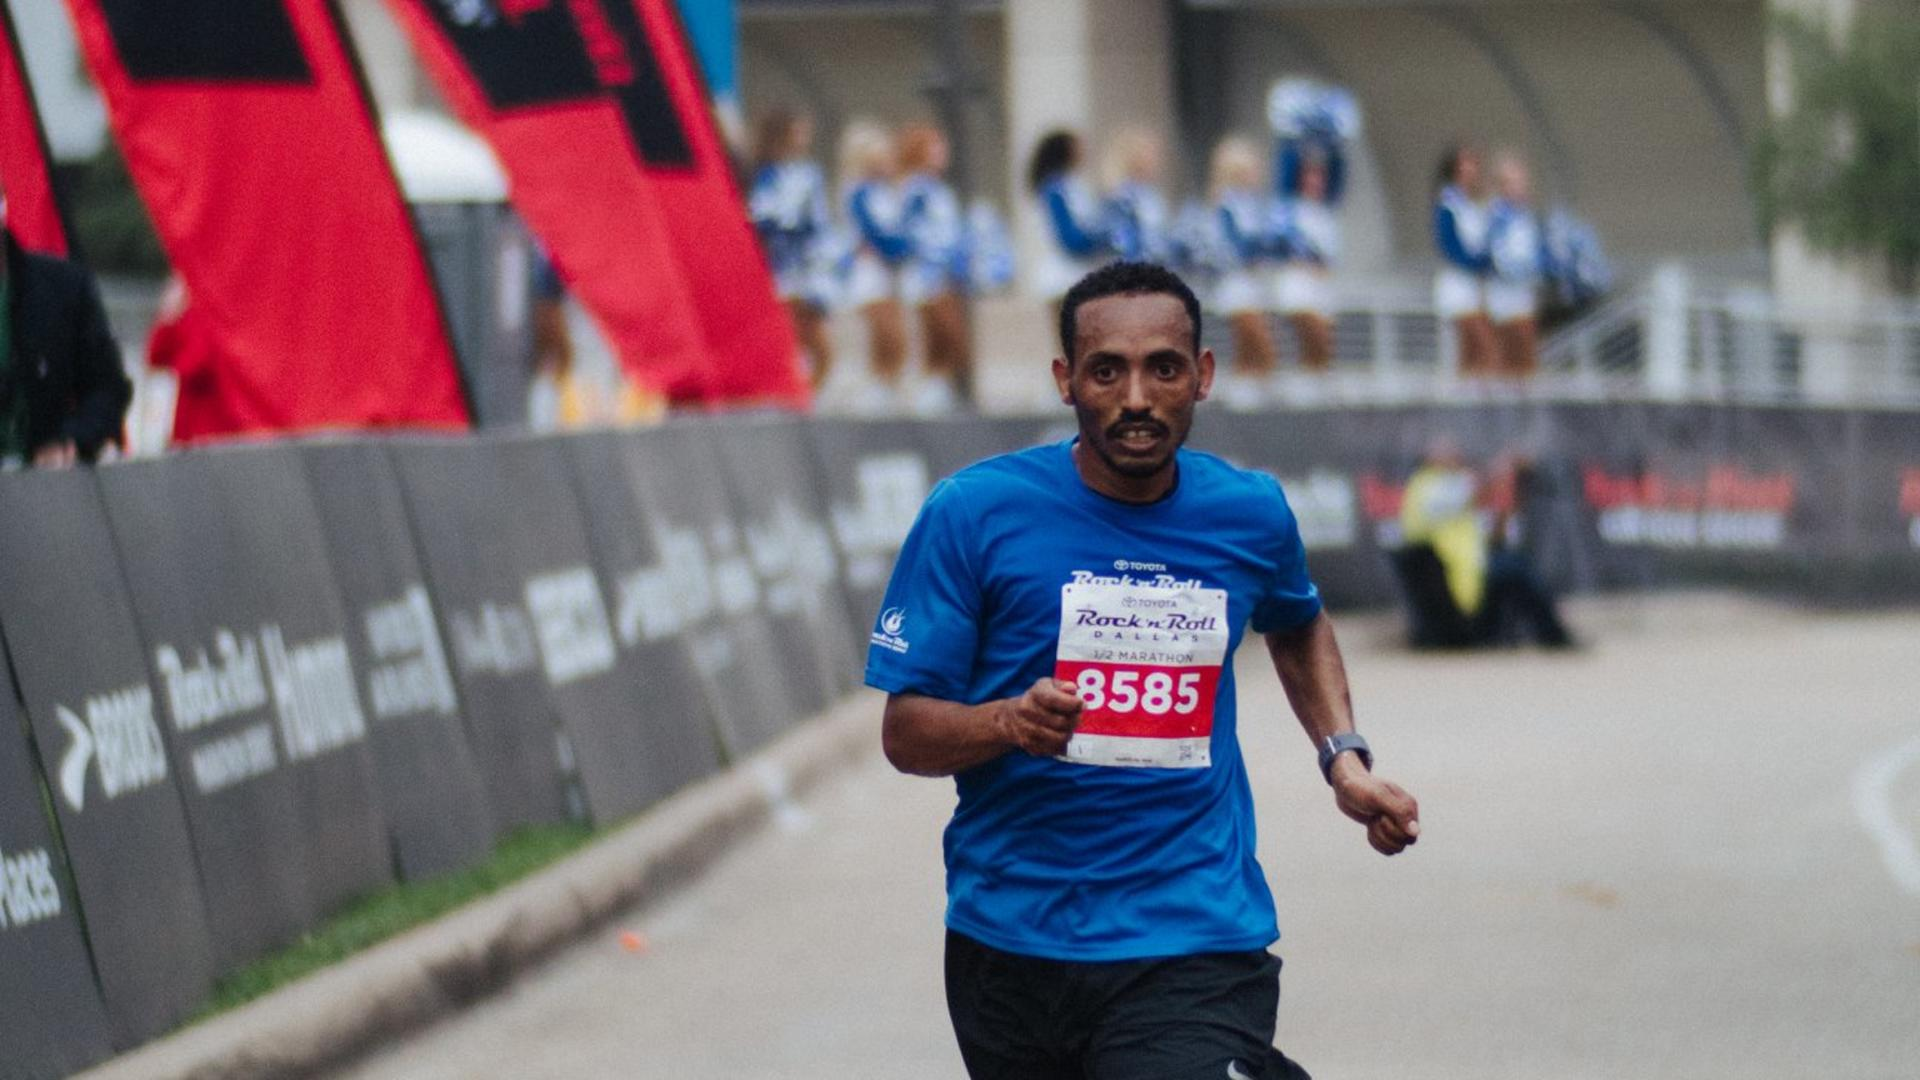 Tolassa crosses the finish line at 1:22:36